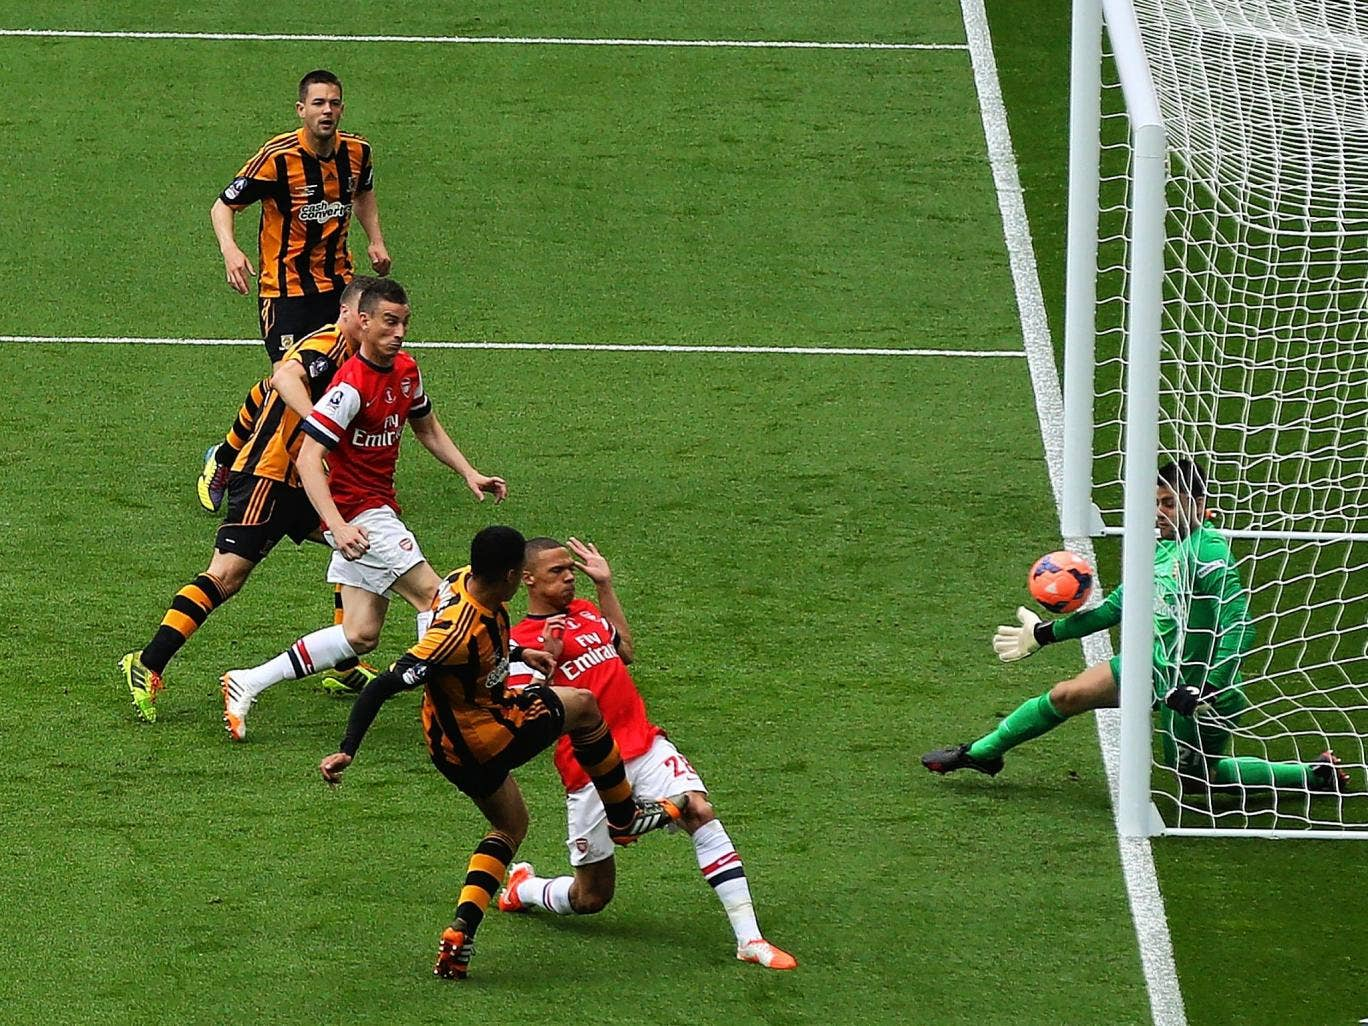 Curtis Davies scores Hull's second goal to make it 2-0 after eight minutes, much to the consternation of Arsène Wenger